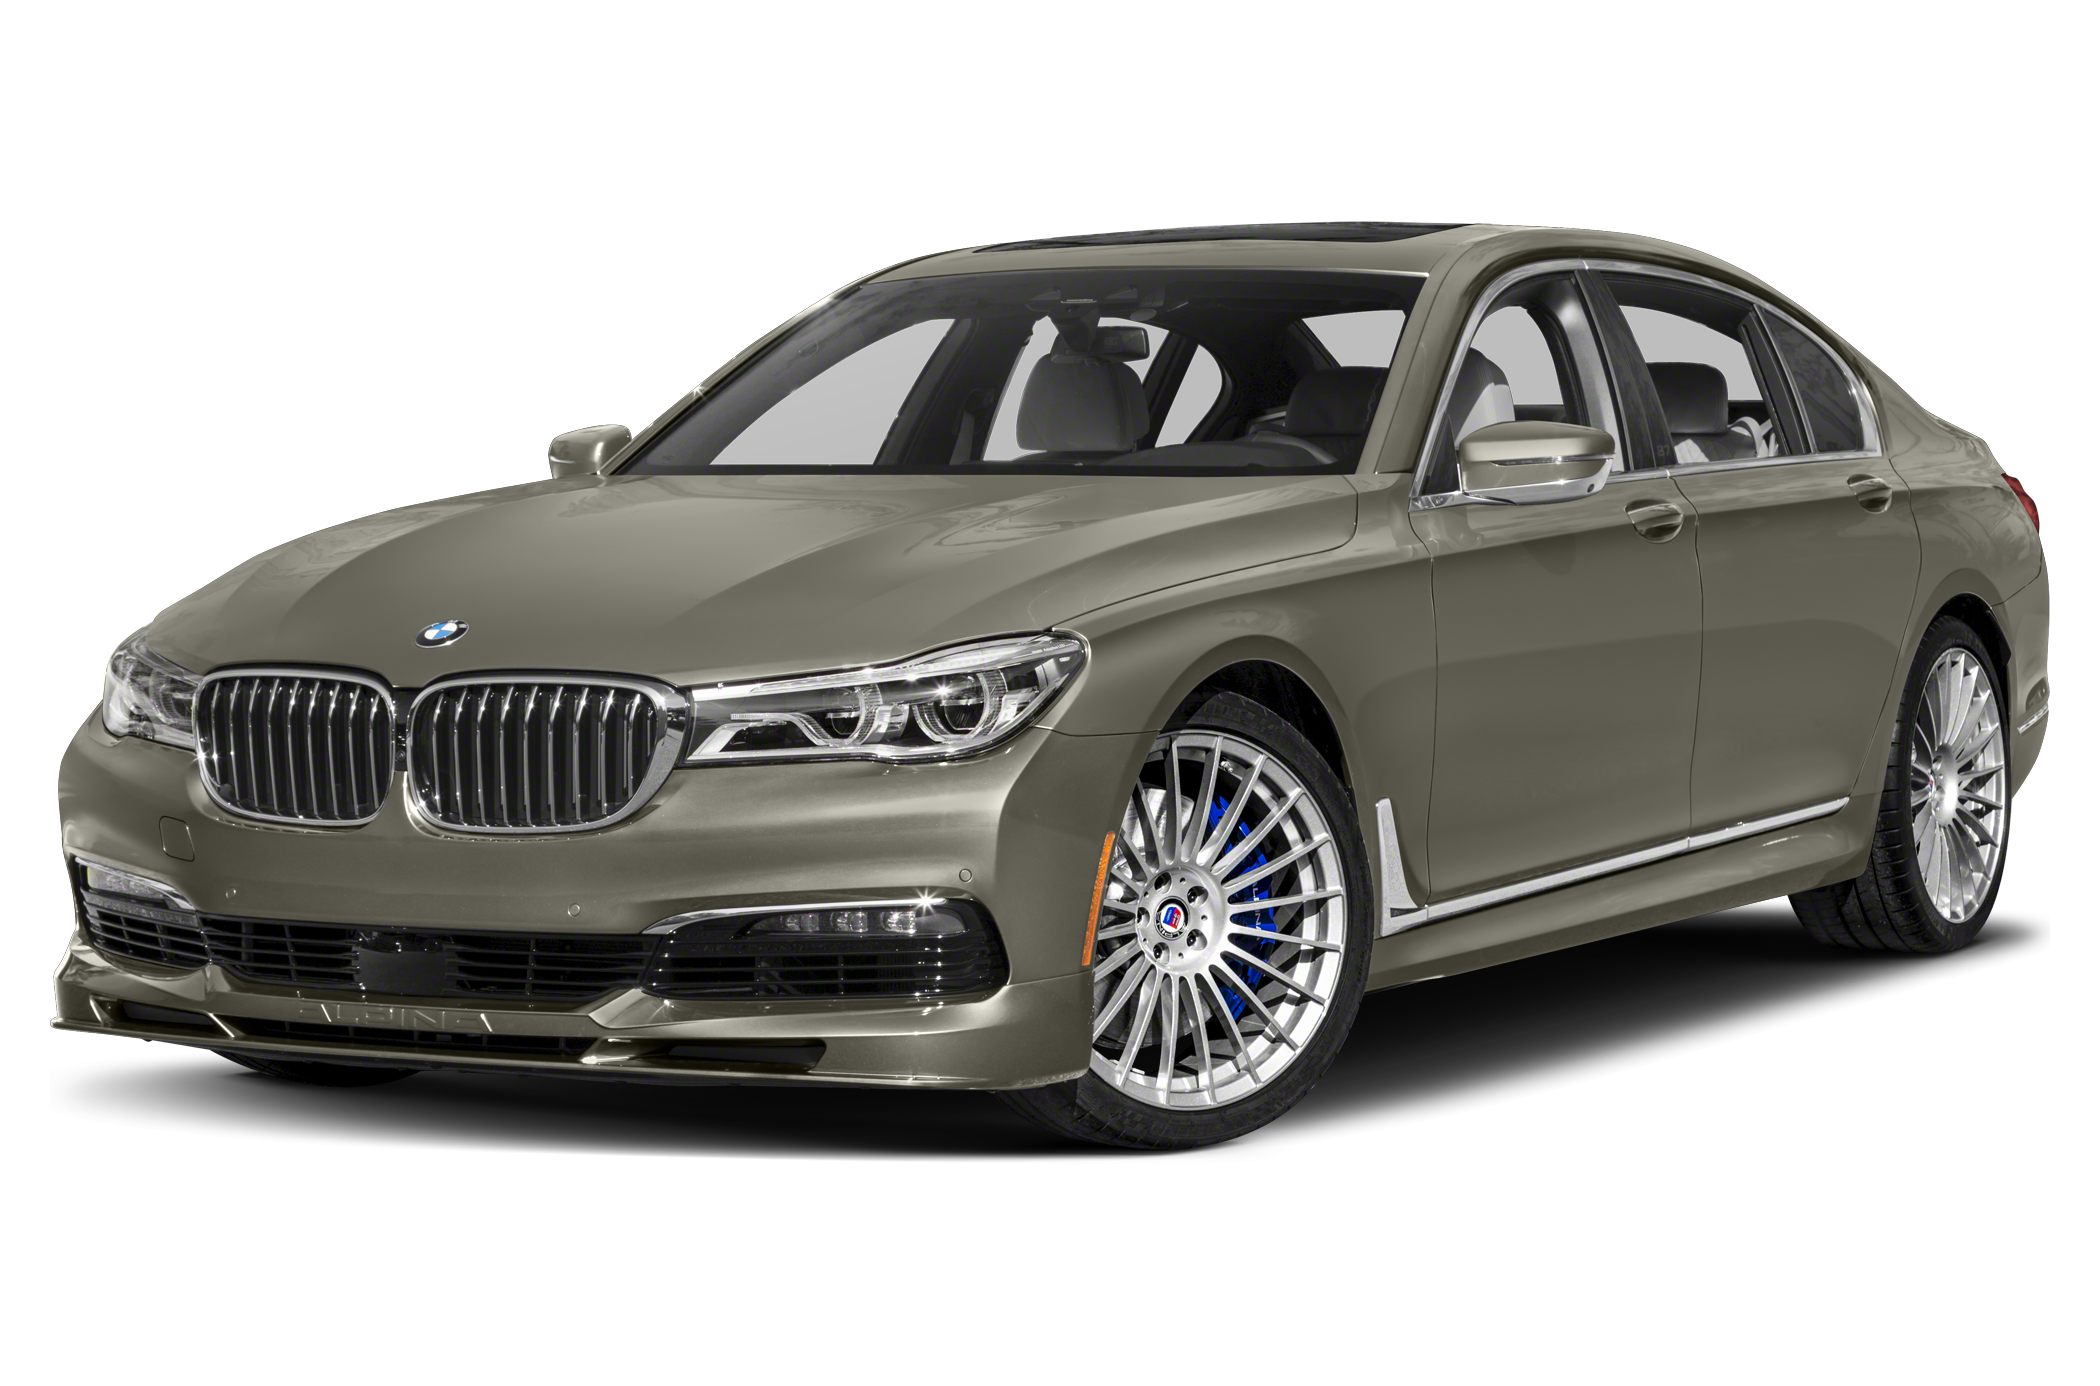 BMW performance engineering boss wants an M7